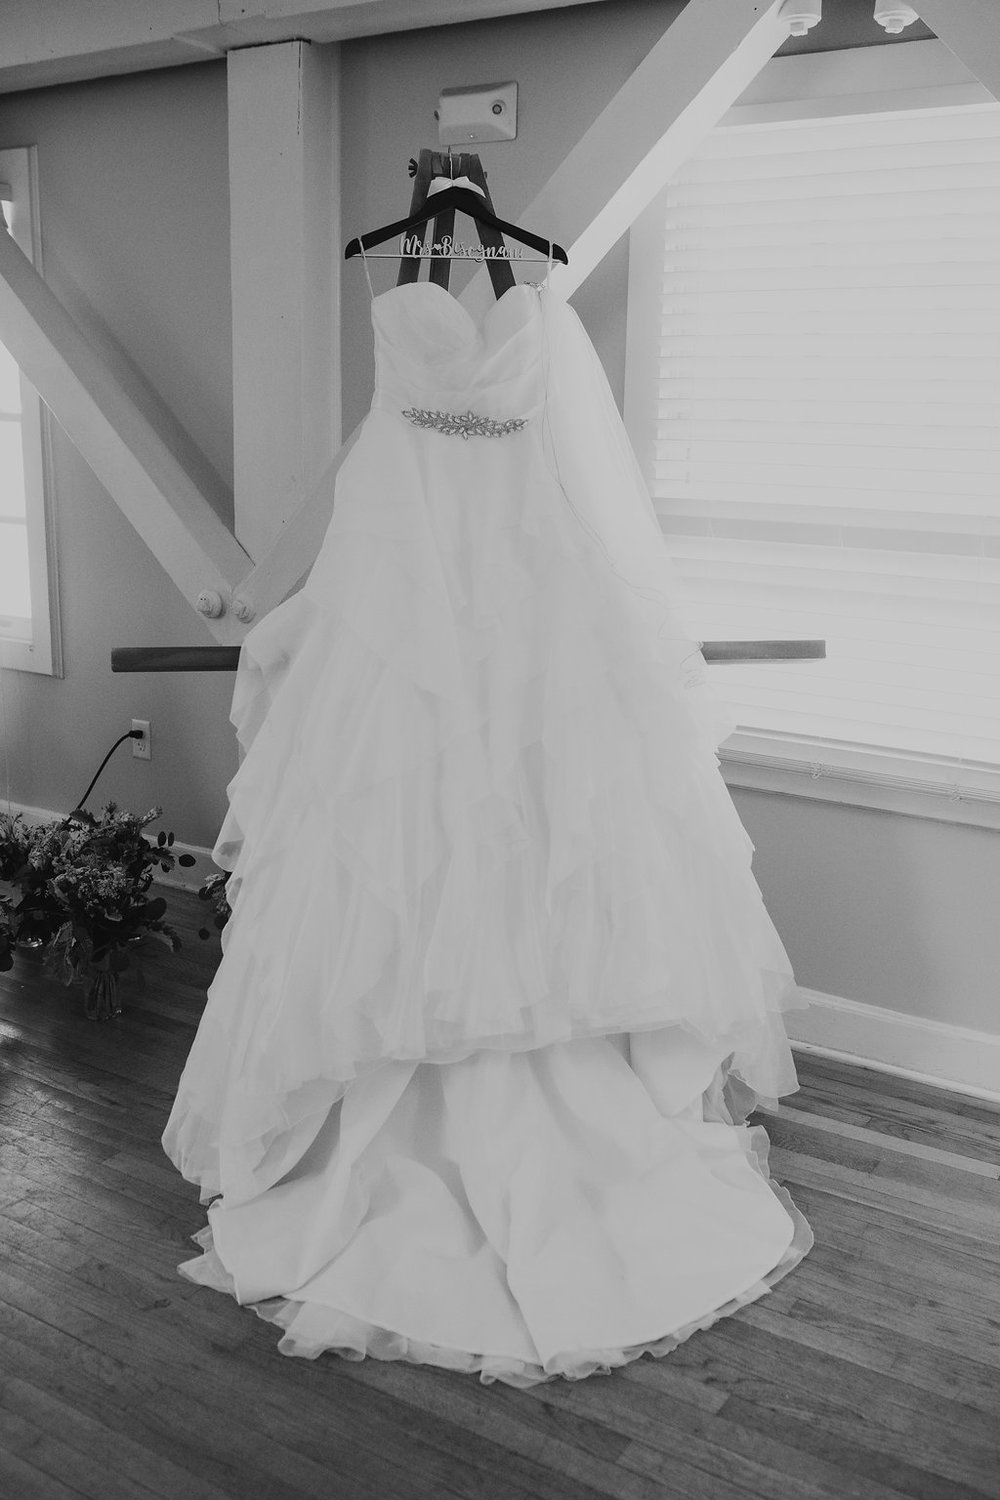 savannah-bridal-shop-i-and-b-bride-devon-auburn-by-maggie-sottero-savannah-wedding-dress-savannah-wedding-gown-savannah-bridal-boutique-cana-dunlap-photography-1.jpg